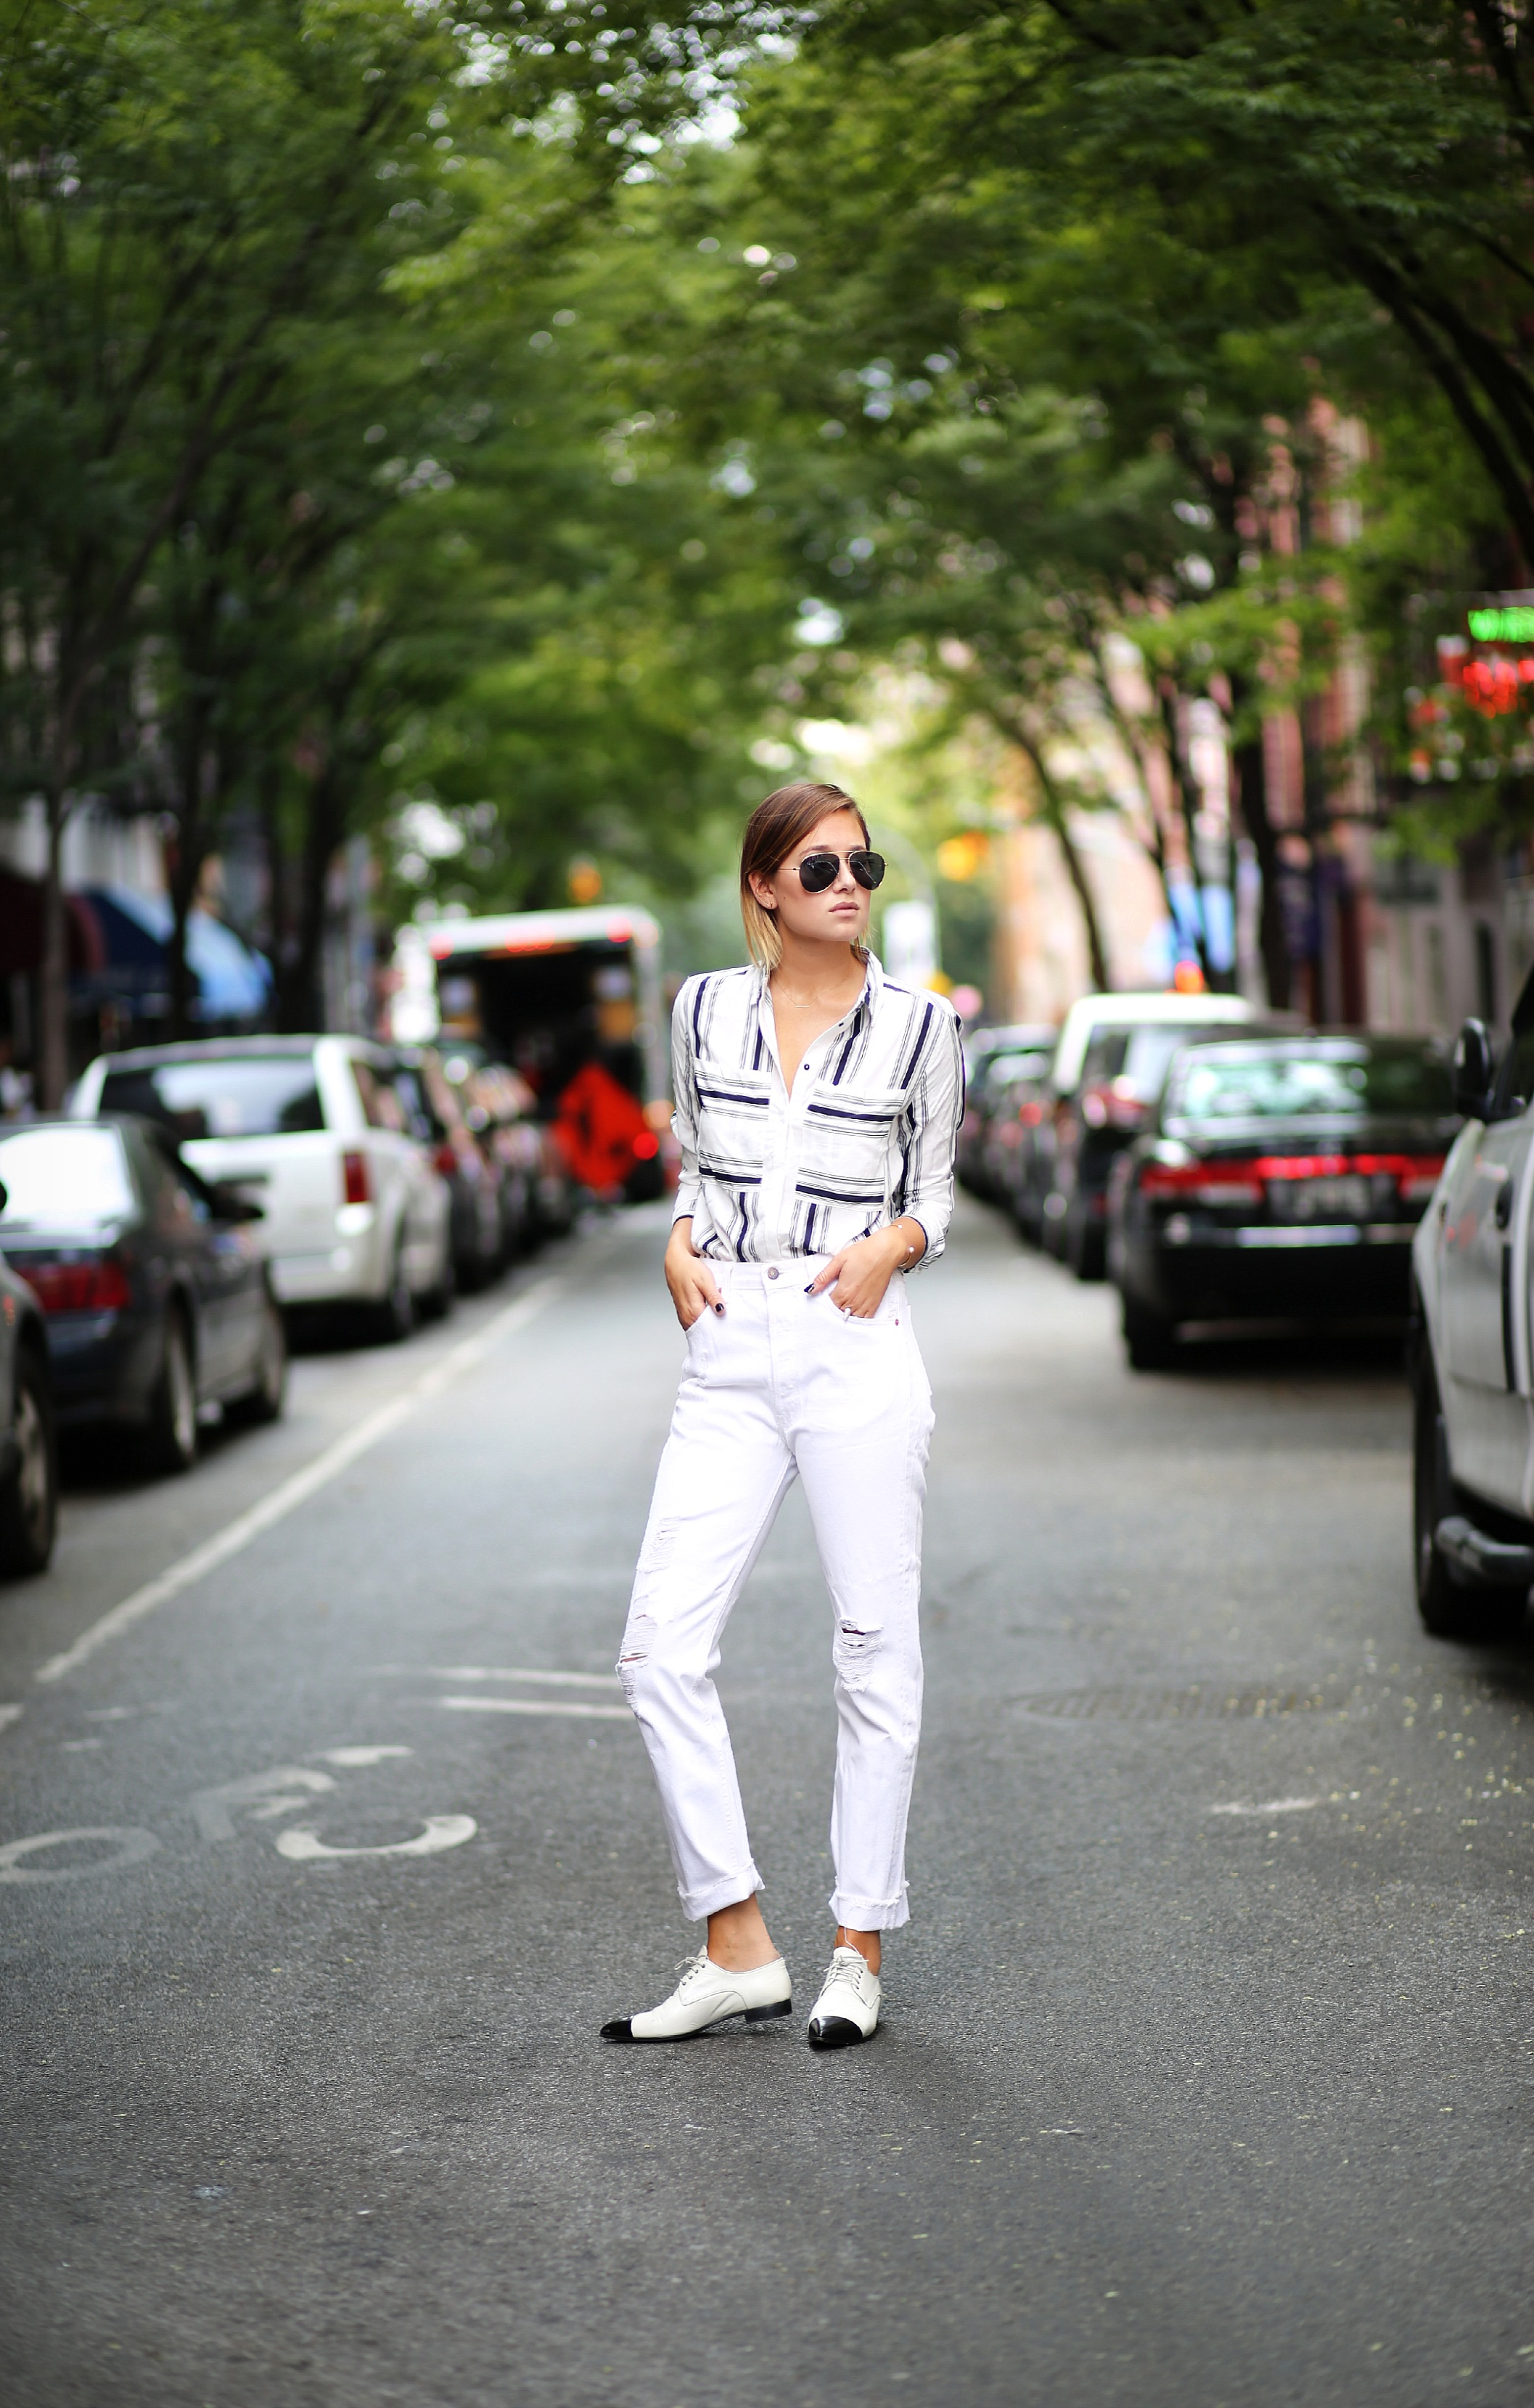 Danielle Bernstein is wearing a black and white striped shirt from H&M, white jeans from TopShop and loafers from Miu Miu